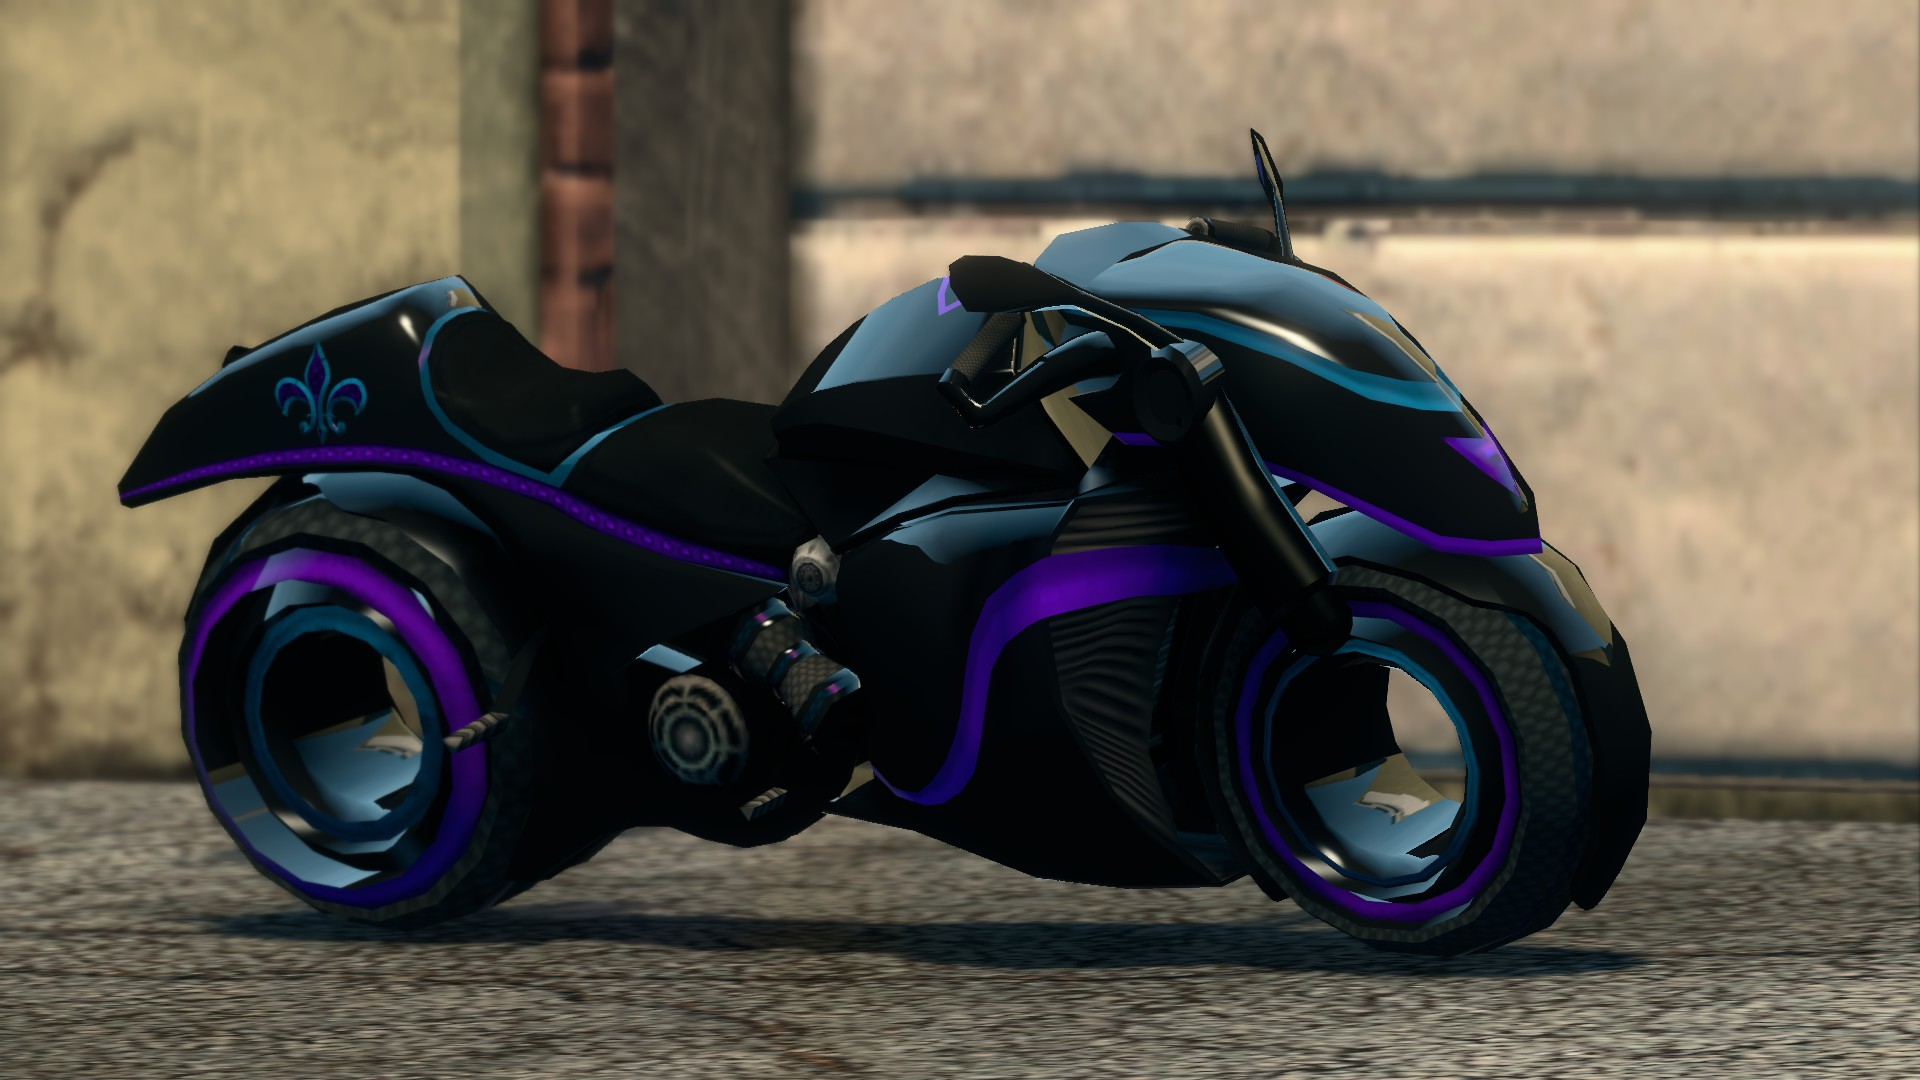 Saints Row The Third Hidden Gang Operations Locations Morningstar Location 2 1295 Online Rare Vehicles